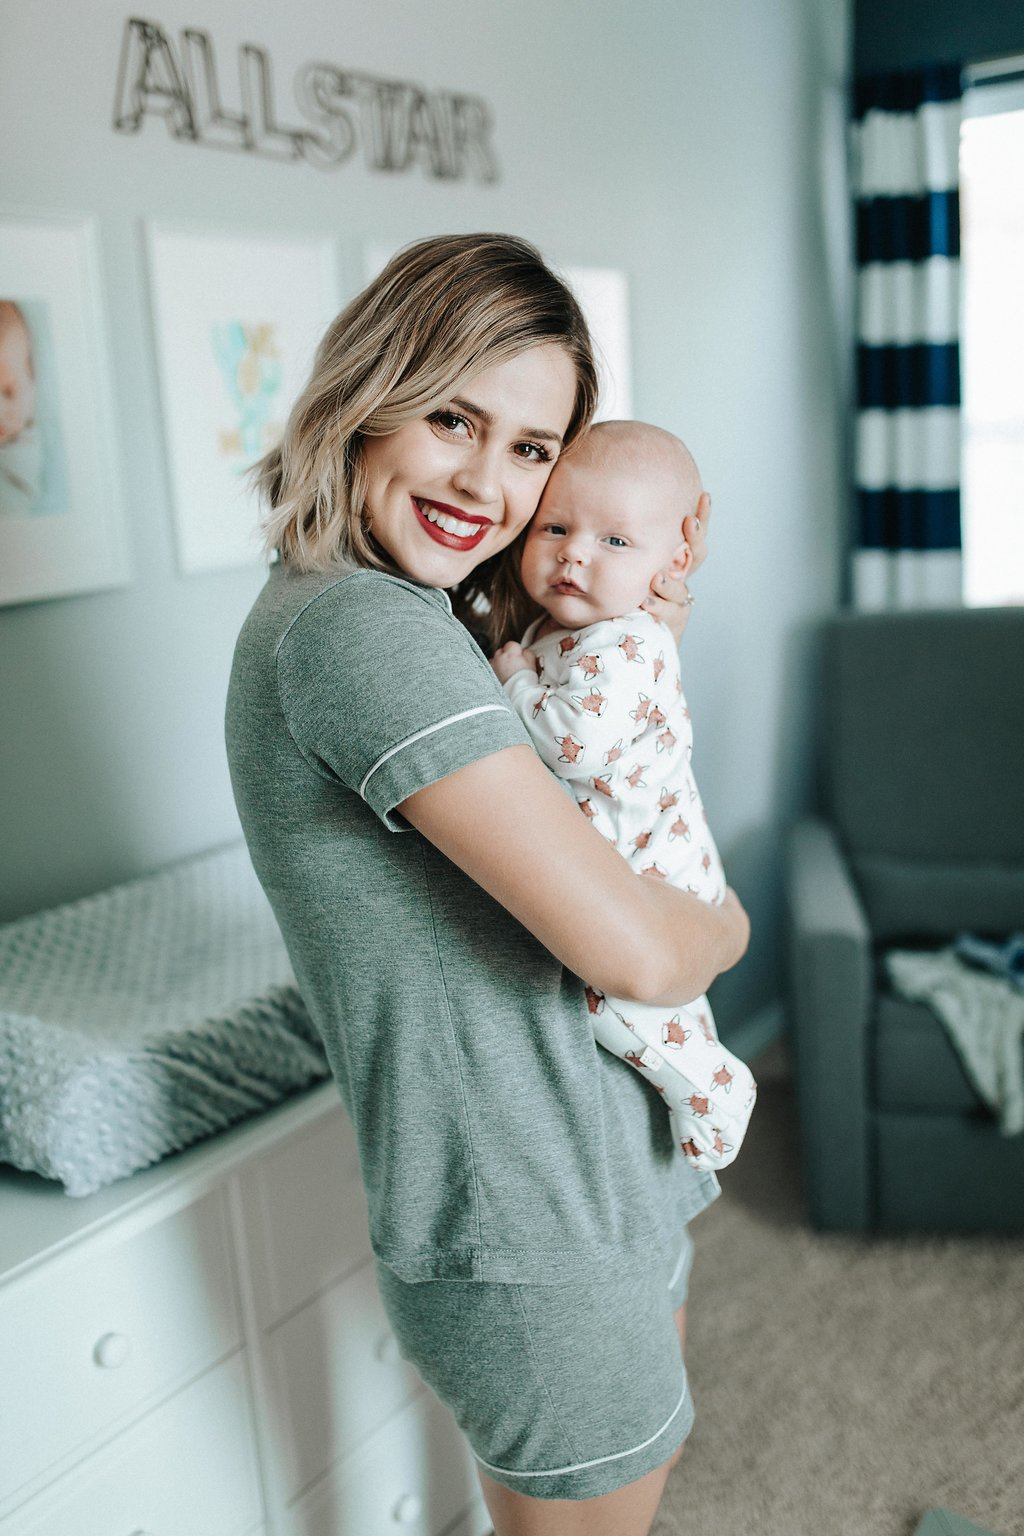 Baby bedtime routine | How to establish a bedtime routine | Jaclyn Smith Spencer clothing line | Uptown with Elly Brown